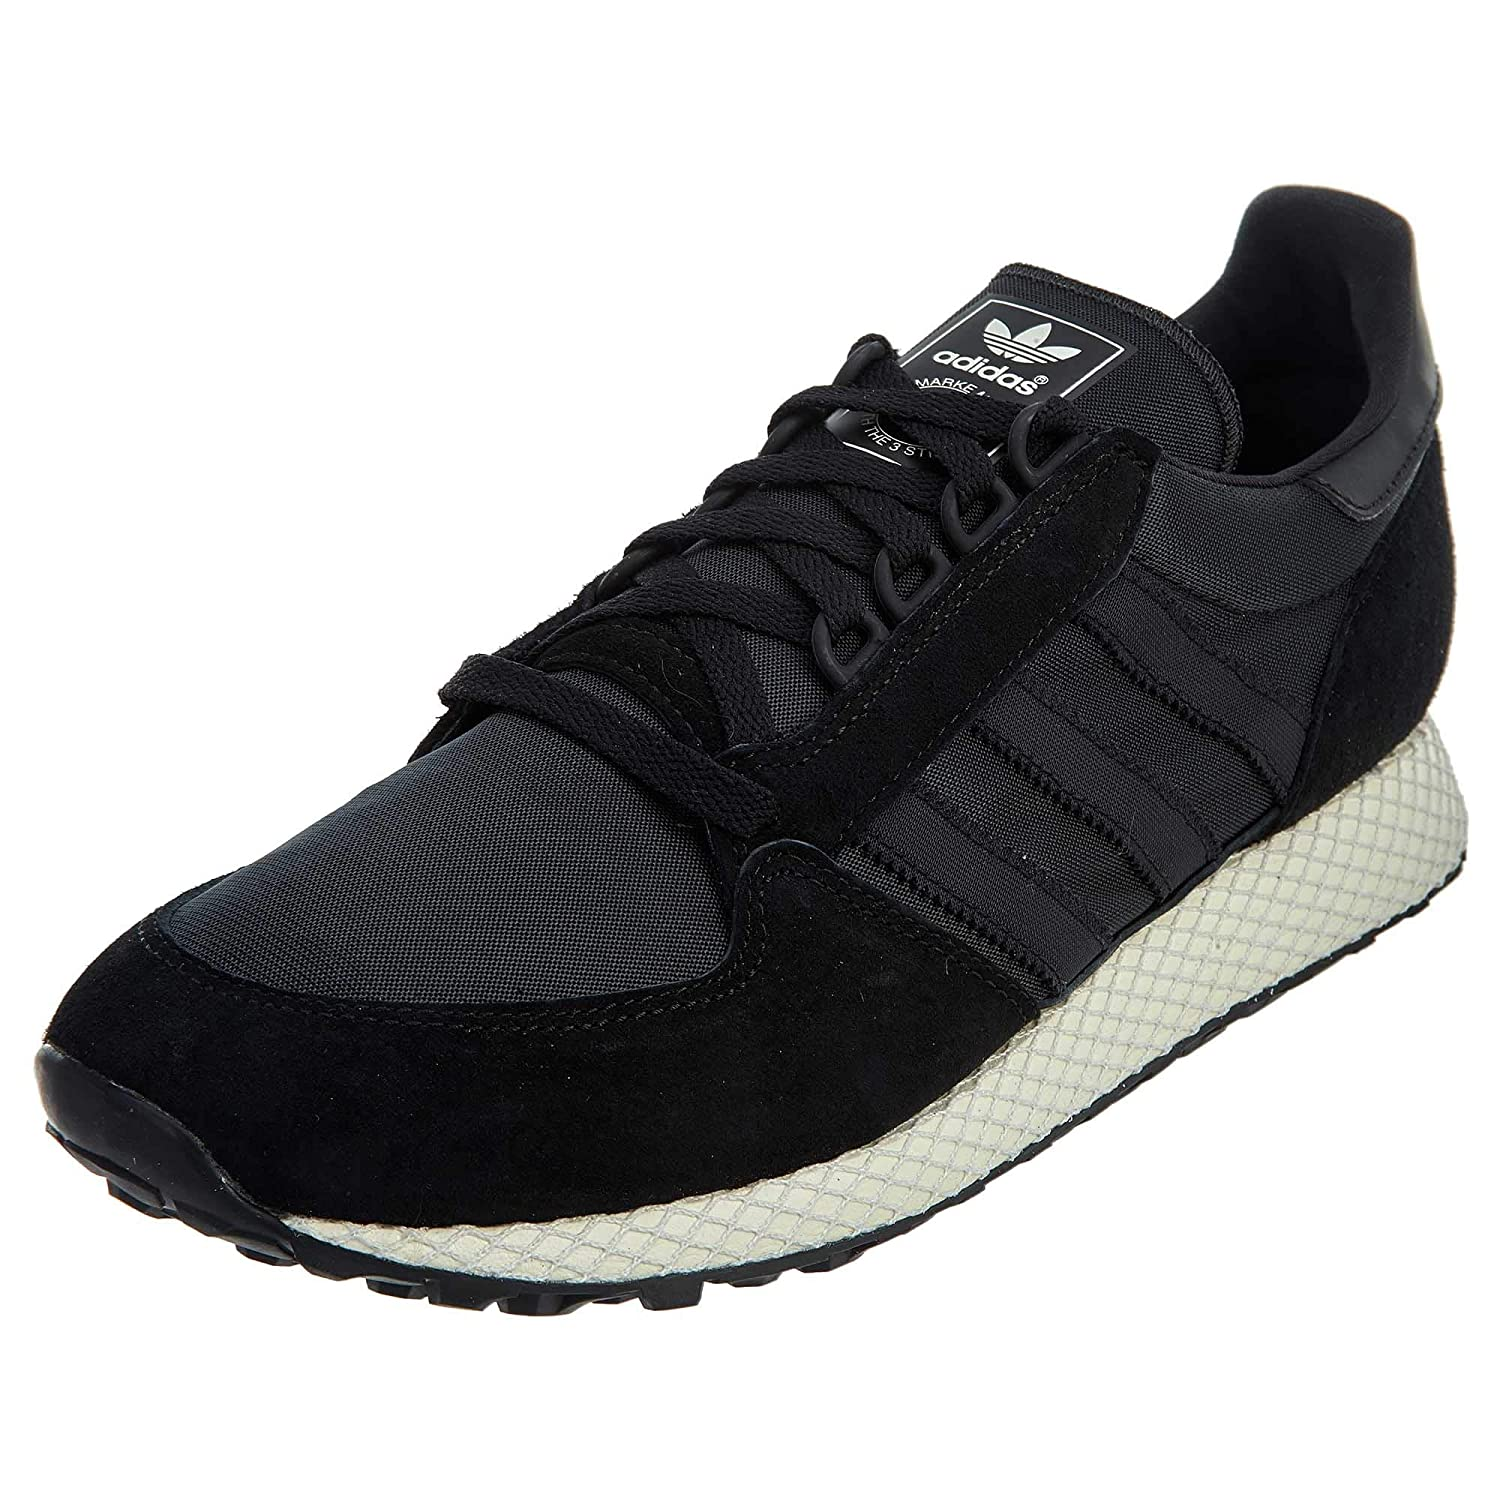 8ed170b4a4 adidas Men's Forest Grove Sneaker